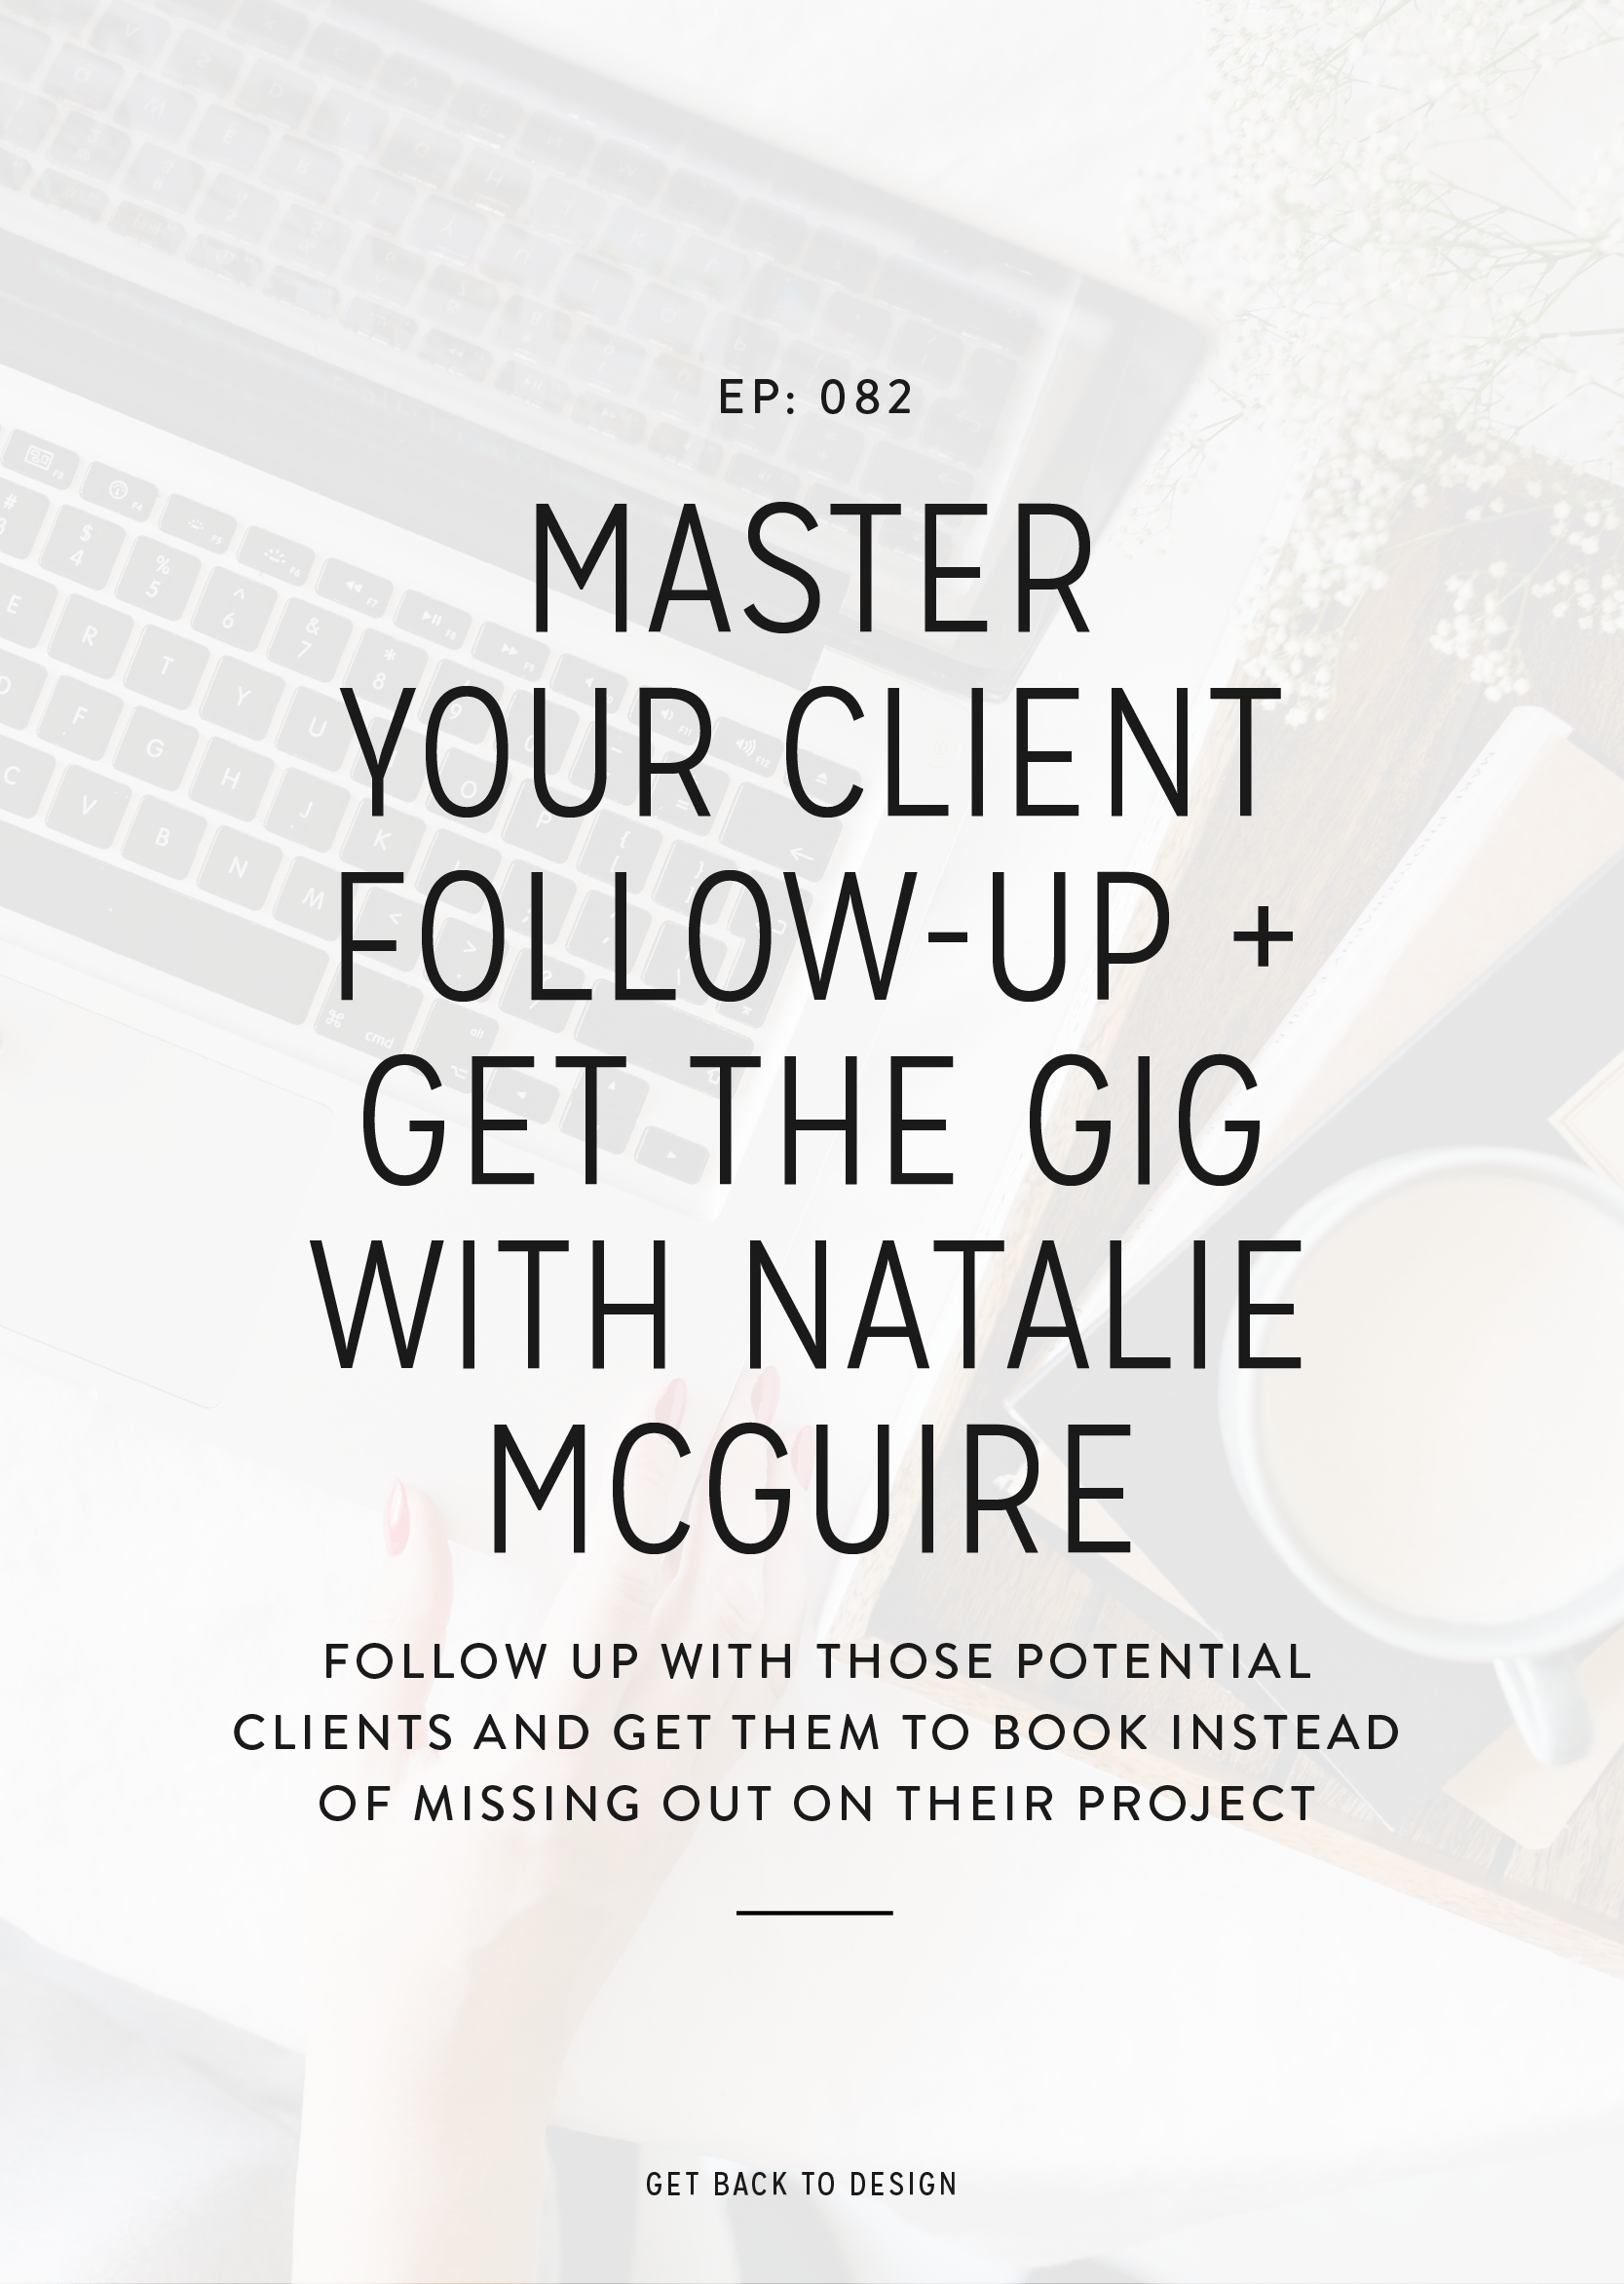 Learn ways to follow up with potential clients and get them to book with you instead of missing out on their project. Listen to the episode with Natalie McGuire for more!